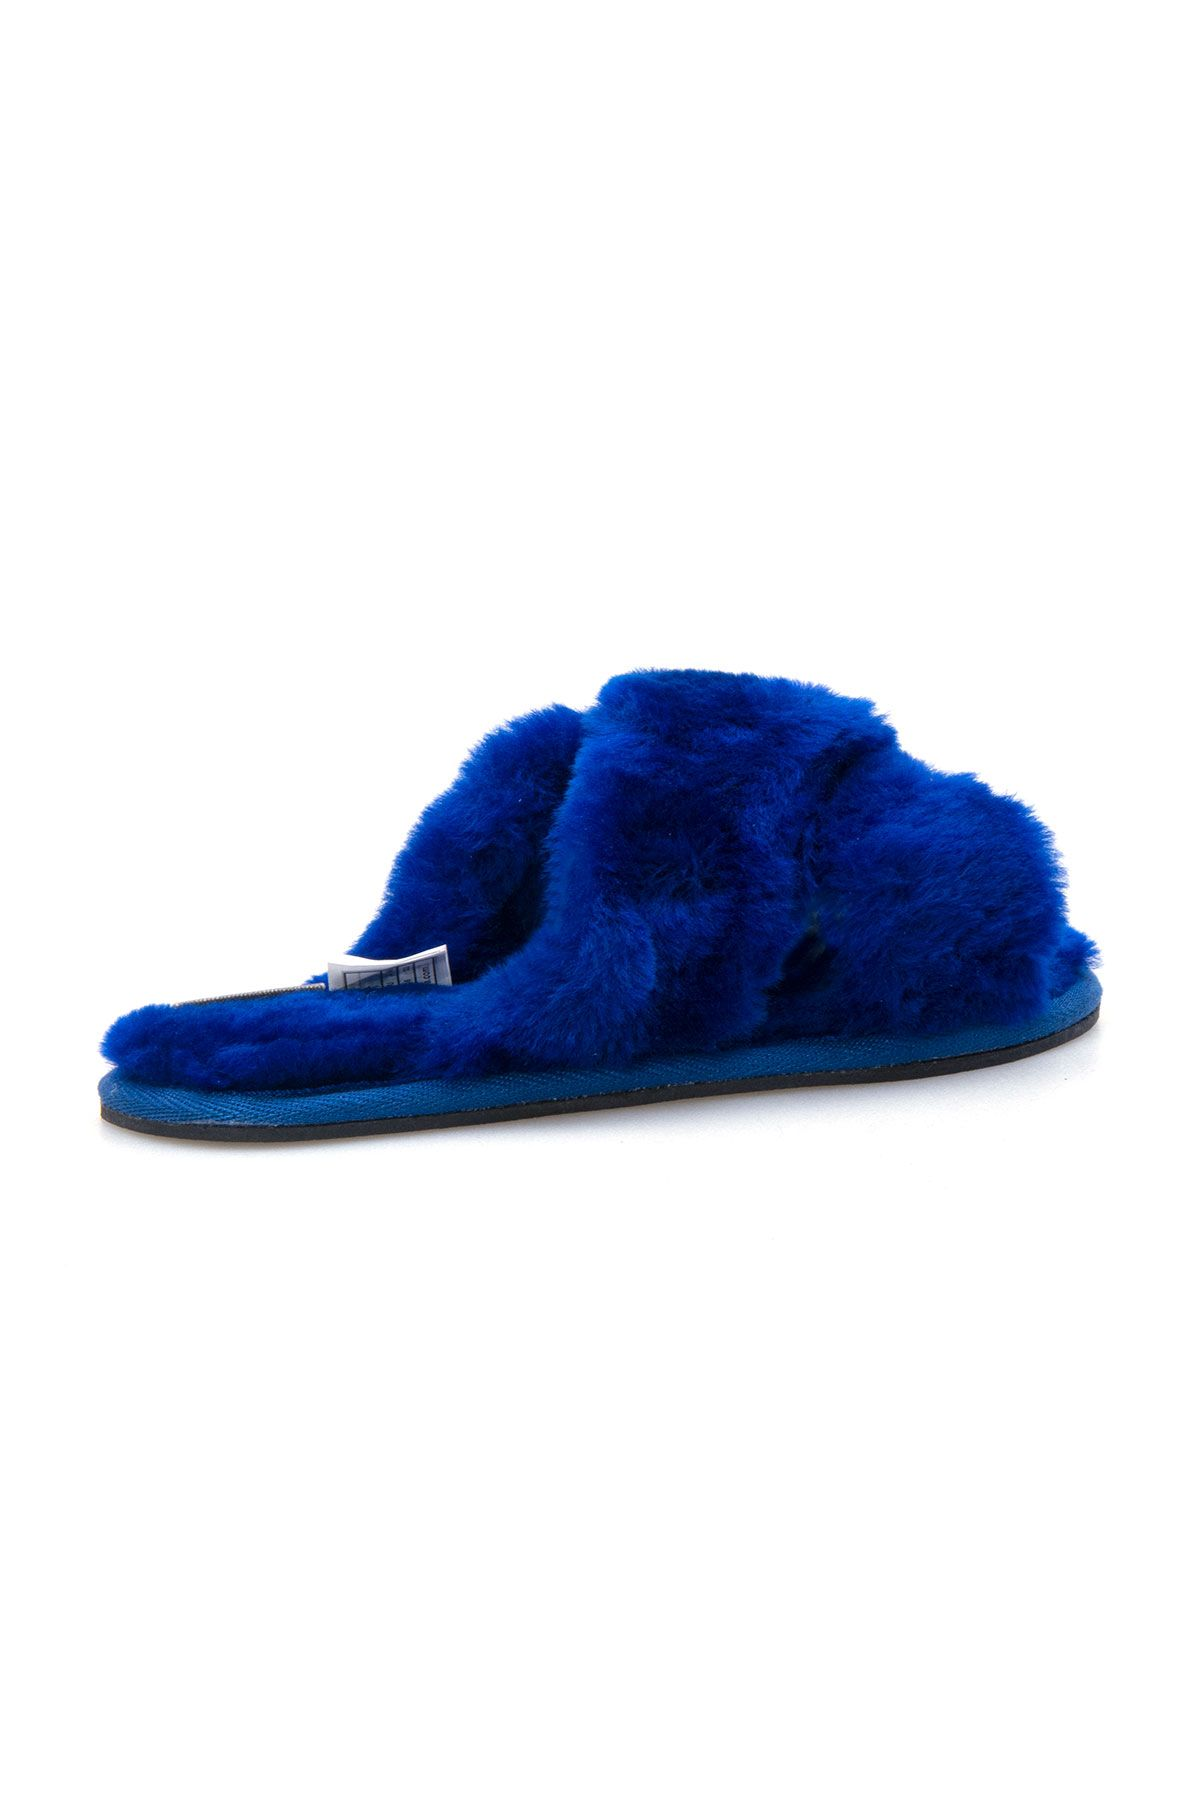 Pegia Women's Shearling Slippers 191096 Navy blue